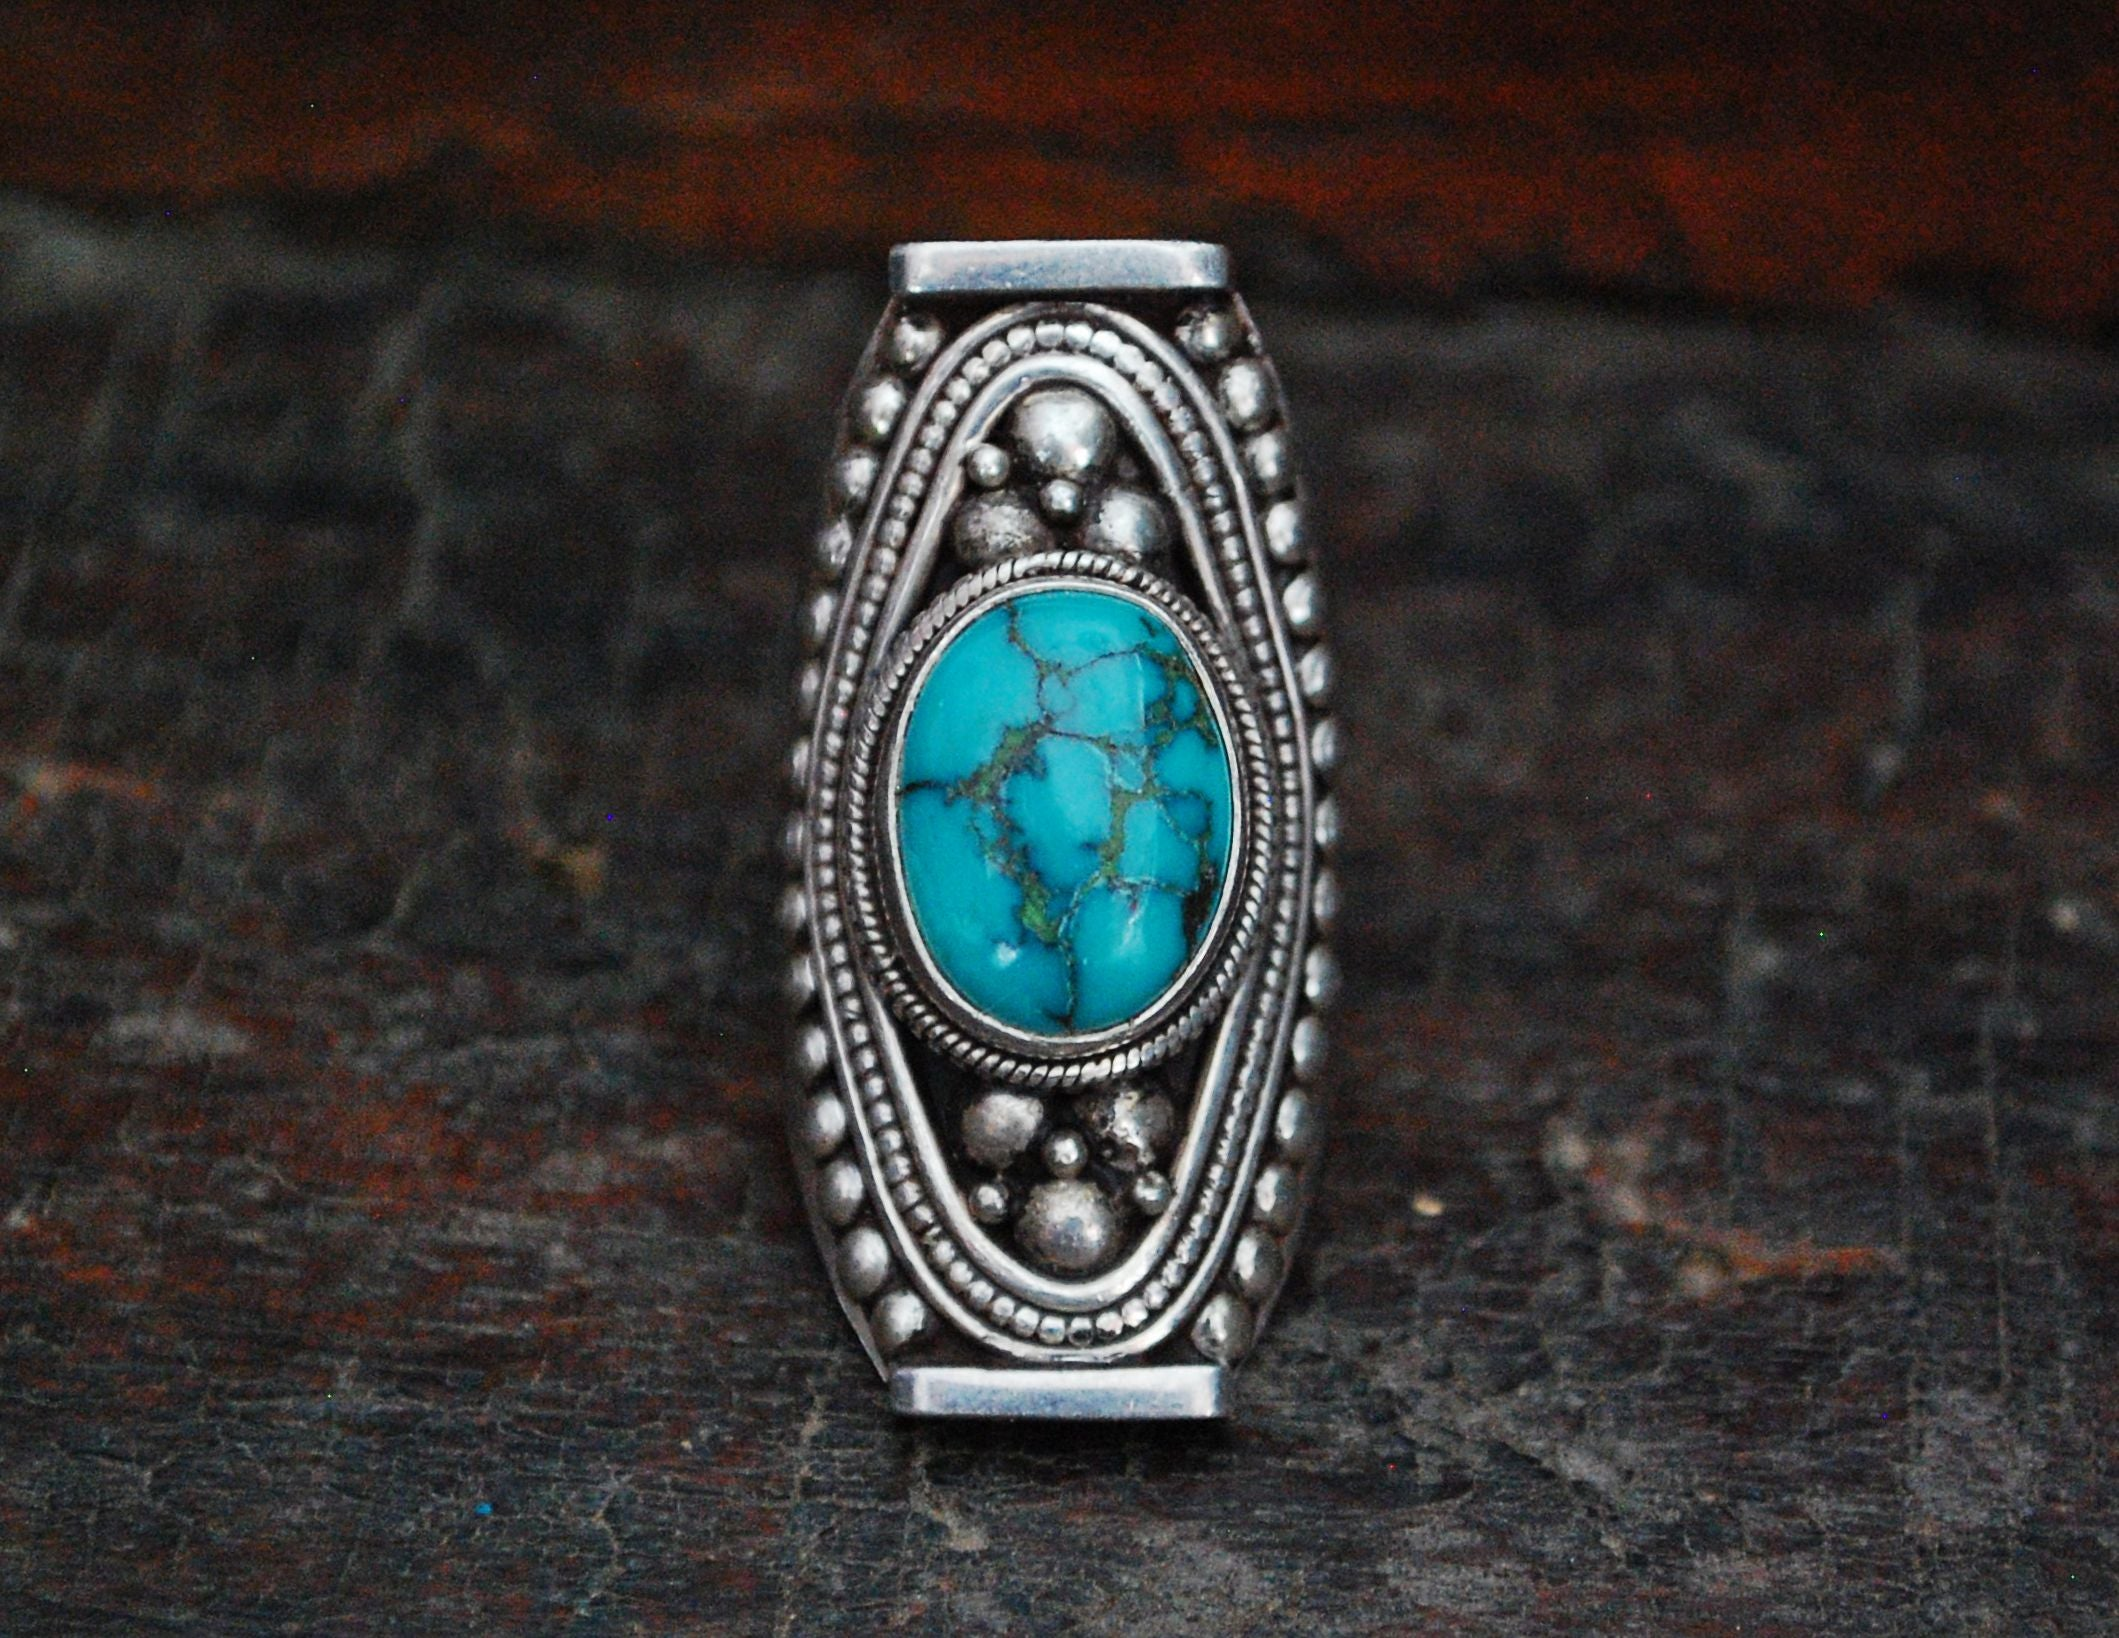 Huge Nepali Turquoise Saddle Ring - Adjustable Size 8+